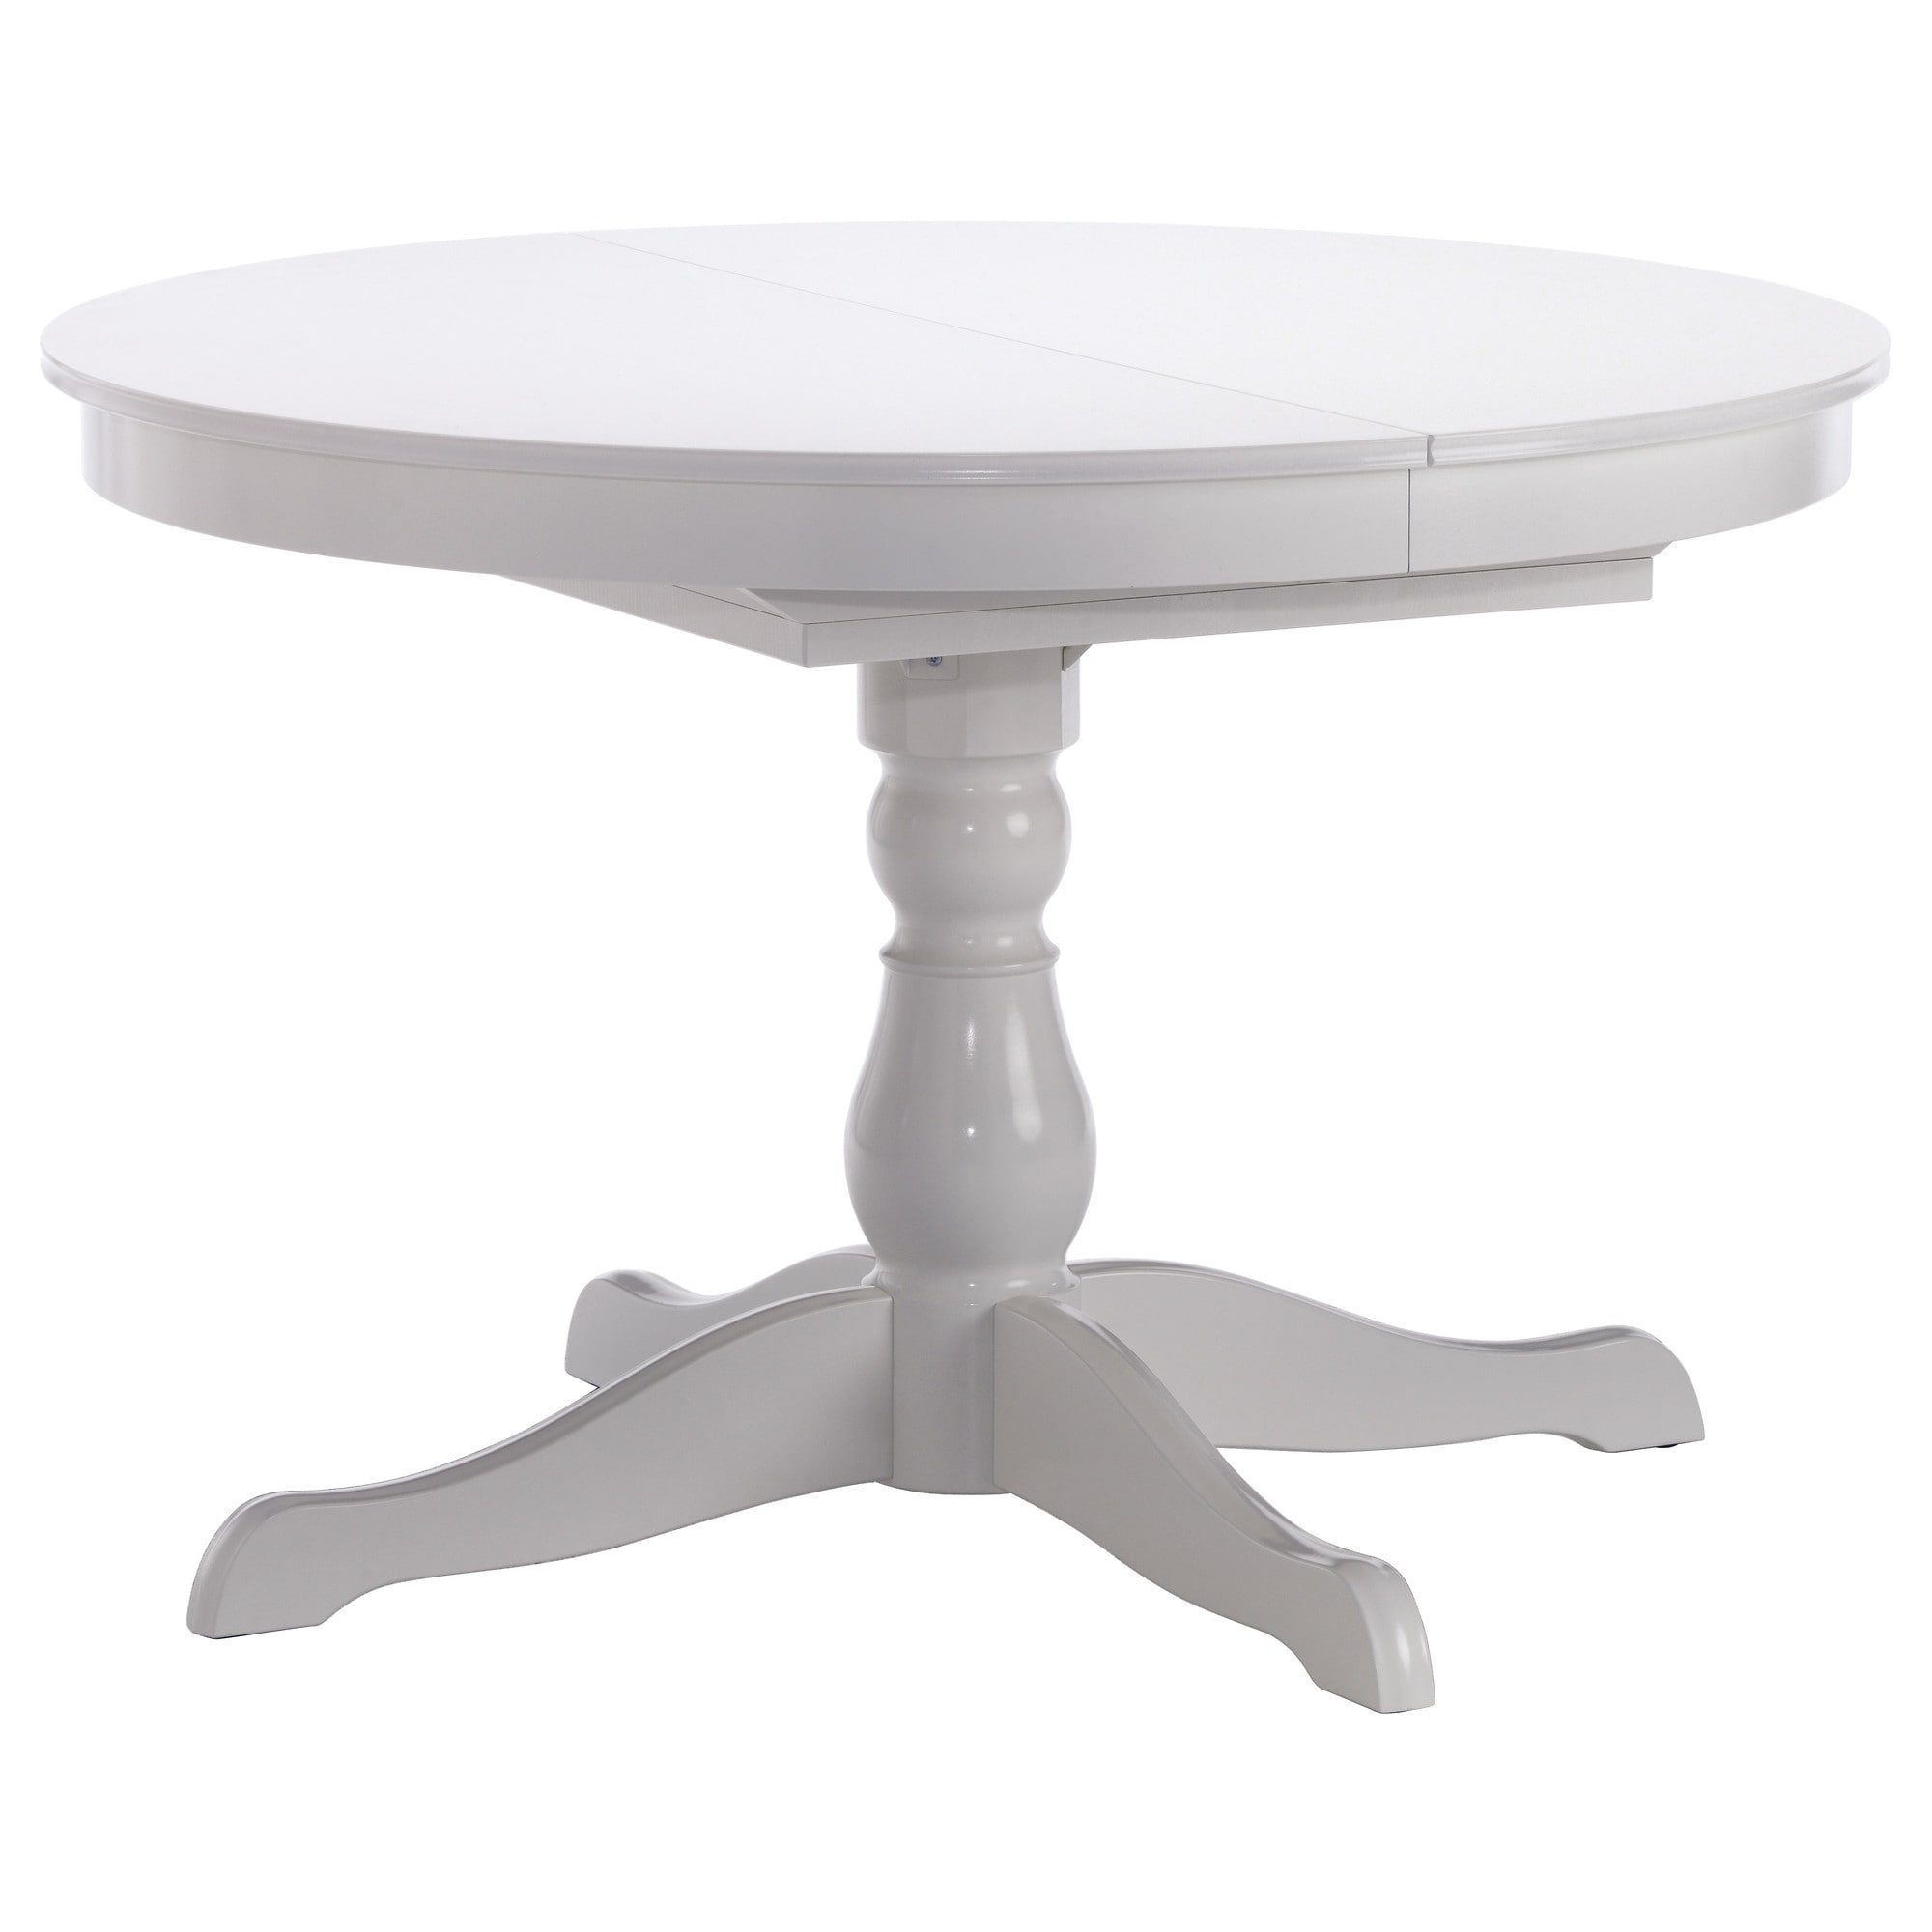 Round Dining Tables (View 25 of 25)